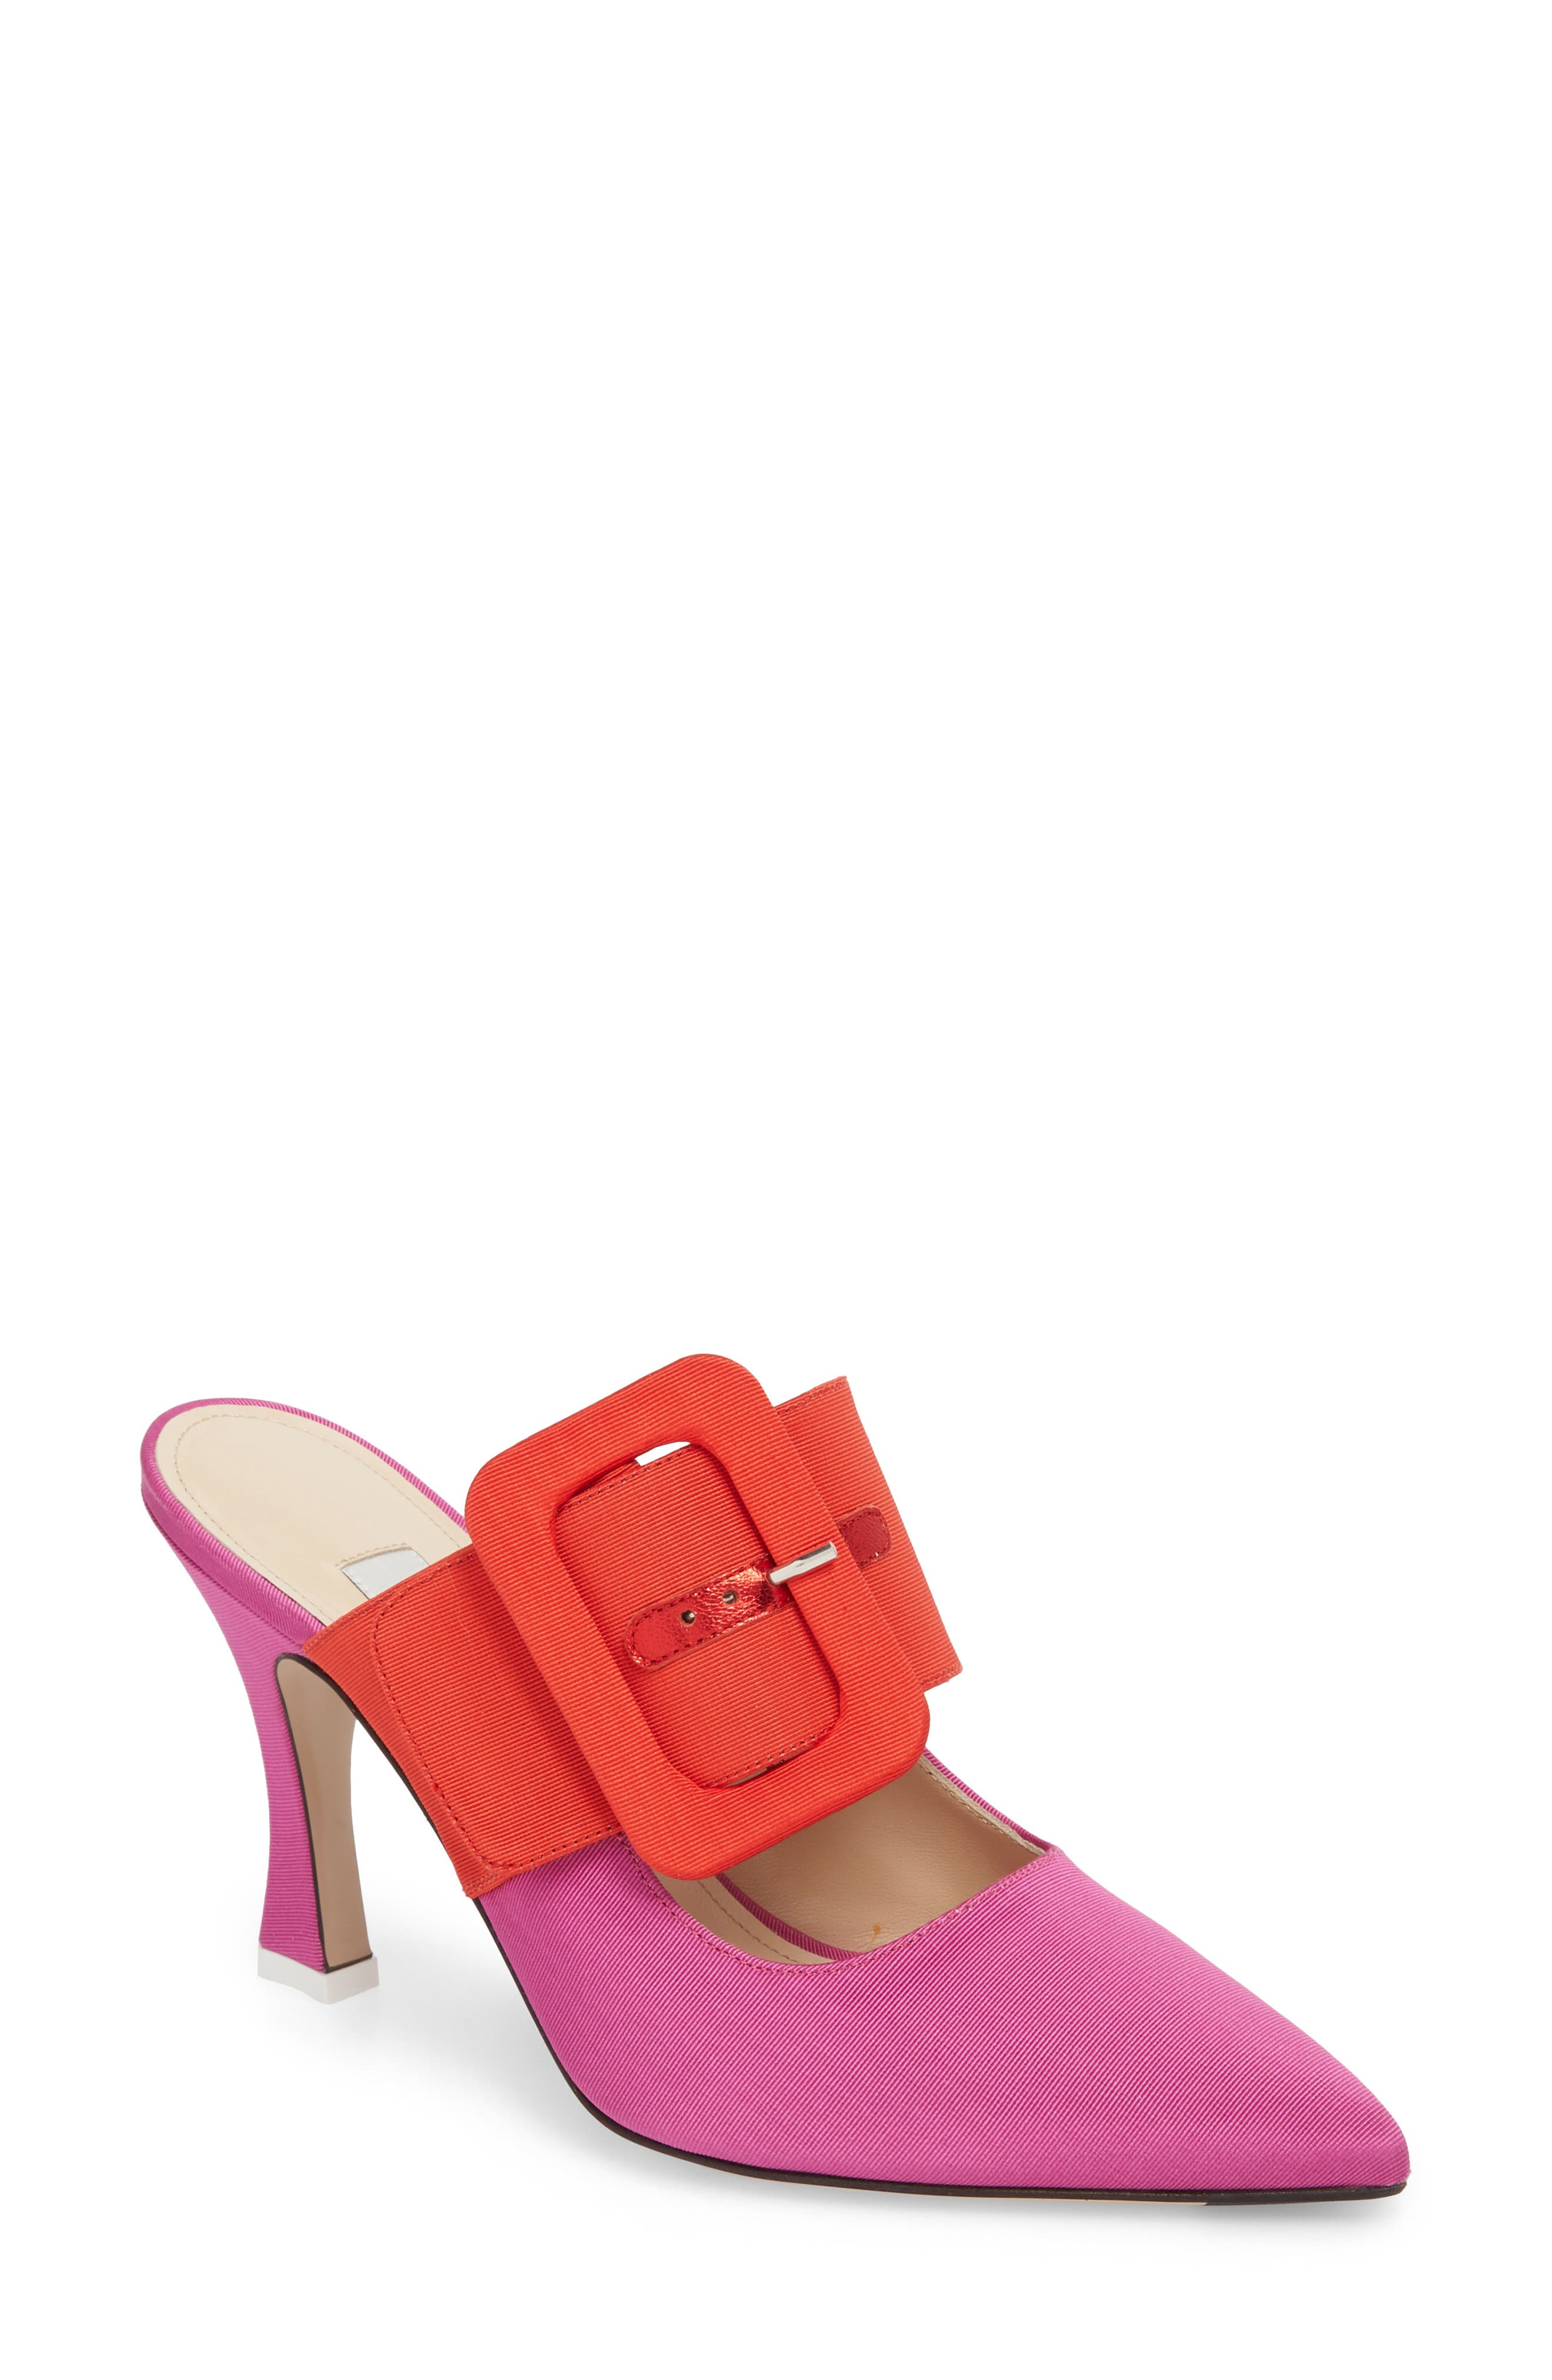 Chloé Buckle Mule,                             Main thumbnail 1, color,                             Pink/ Red